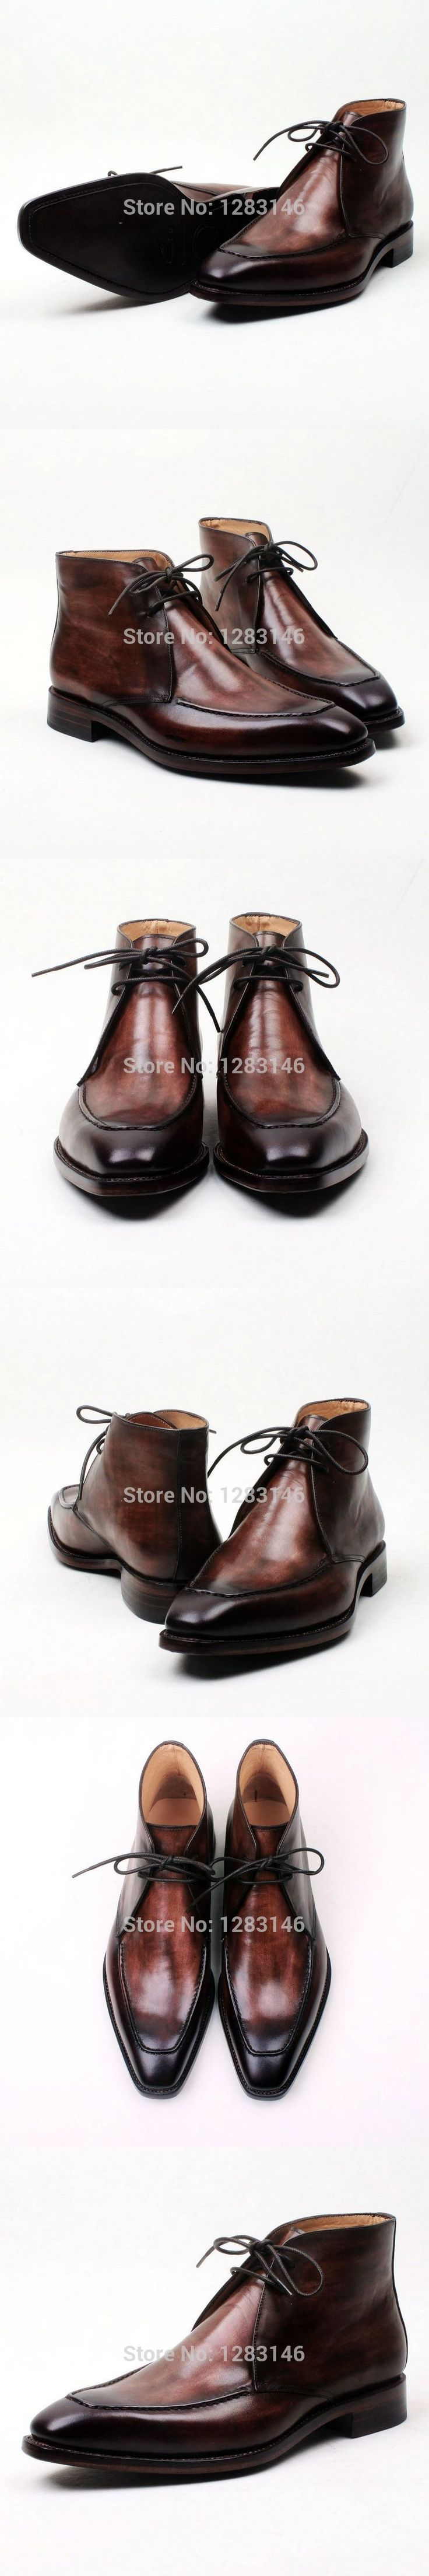 obbilly Bespoke Handmade Lacing Genuine Leather Outsole/Upper/Insole Brown Goodyear Welted Men's Fashion Leather Boot No.a119